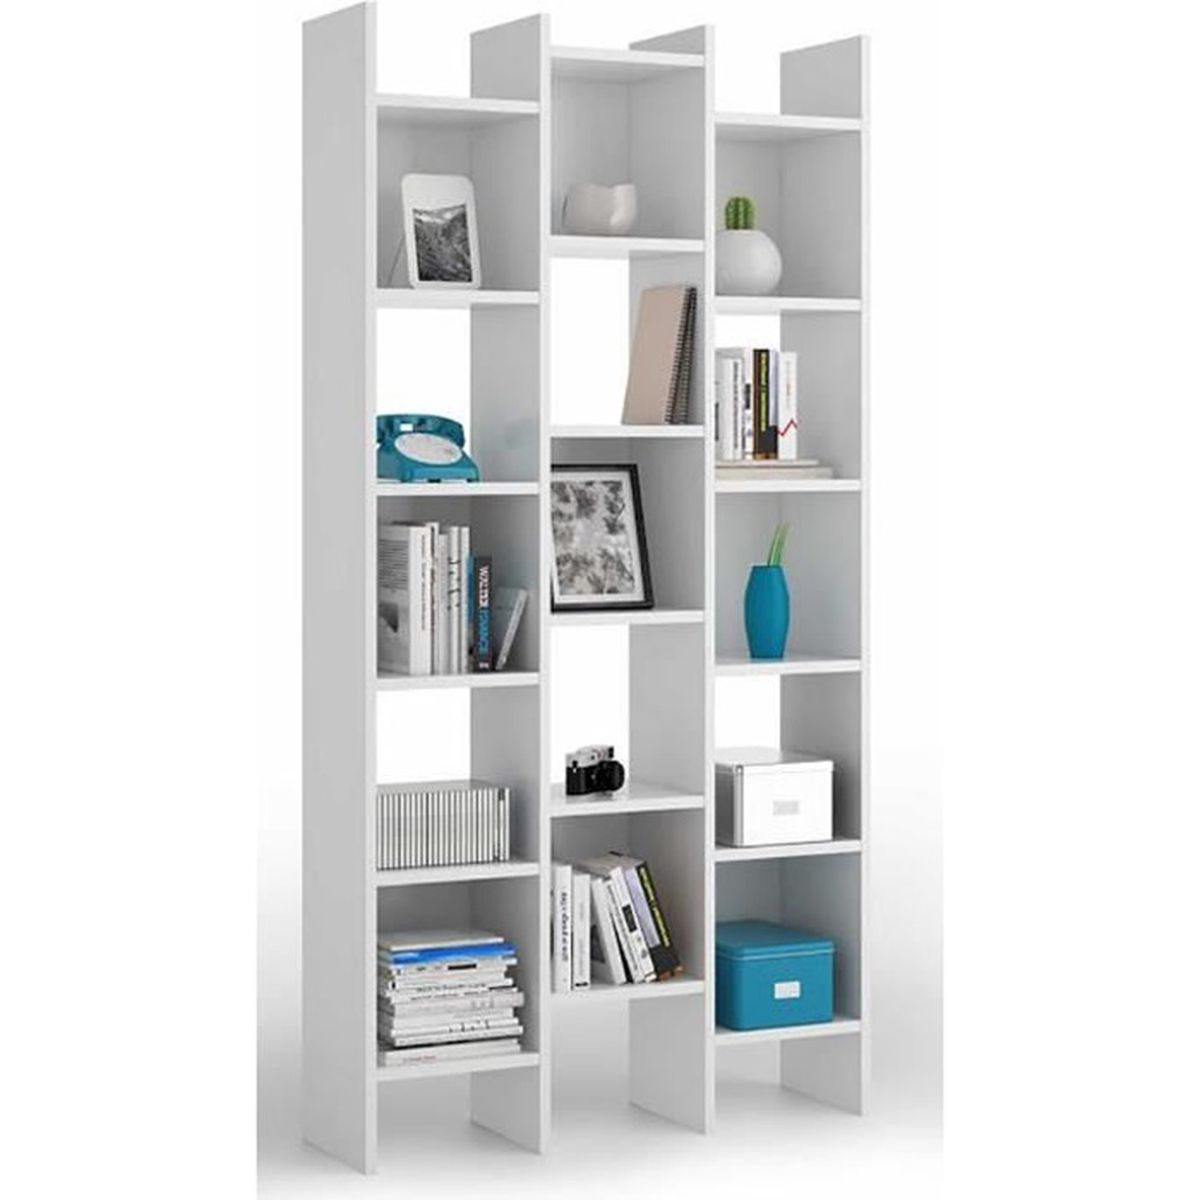 biblioth que blanche avec 15 compartiments dim h 192 x l 96 x p 29 cm achat vente. Black Bedroom Furniture Sets. Home Design Ideas